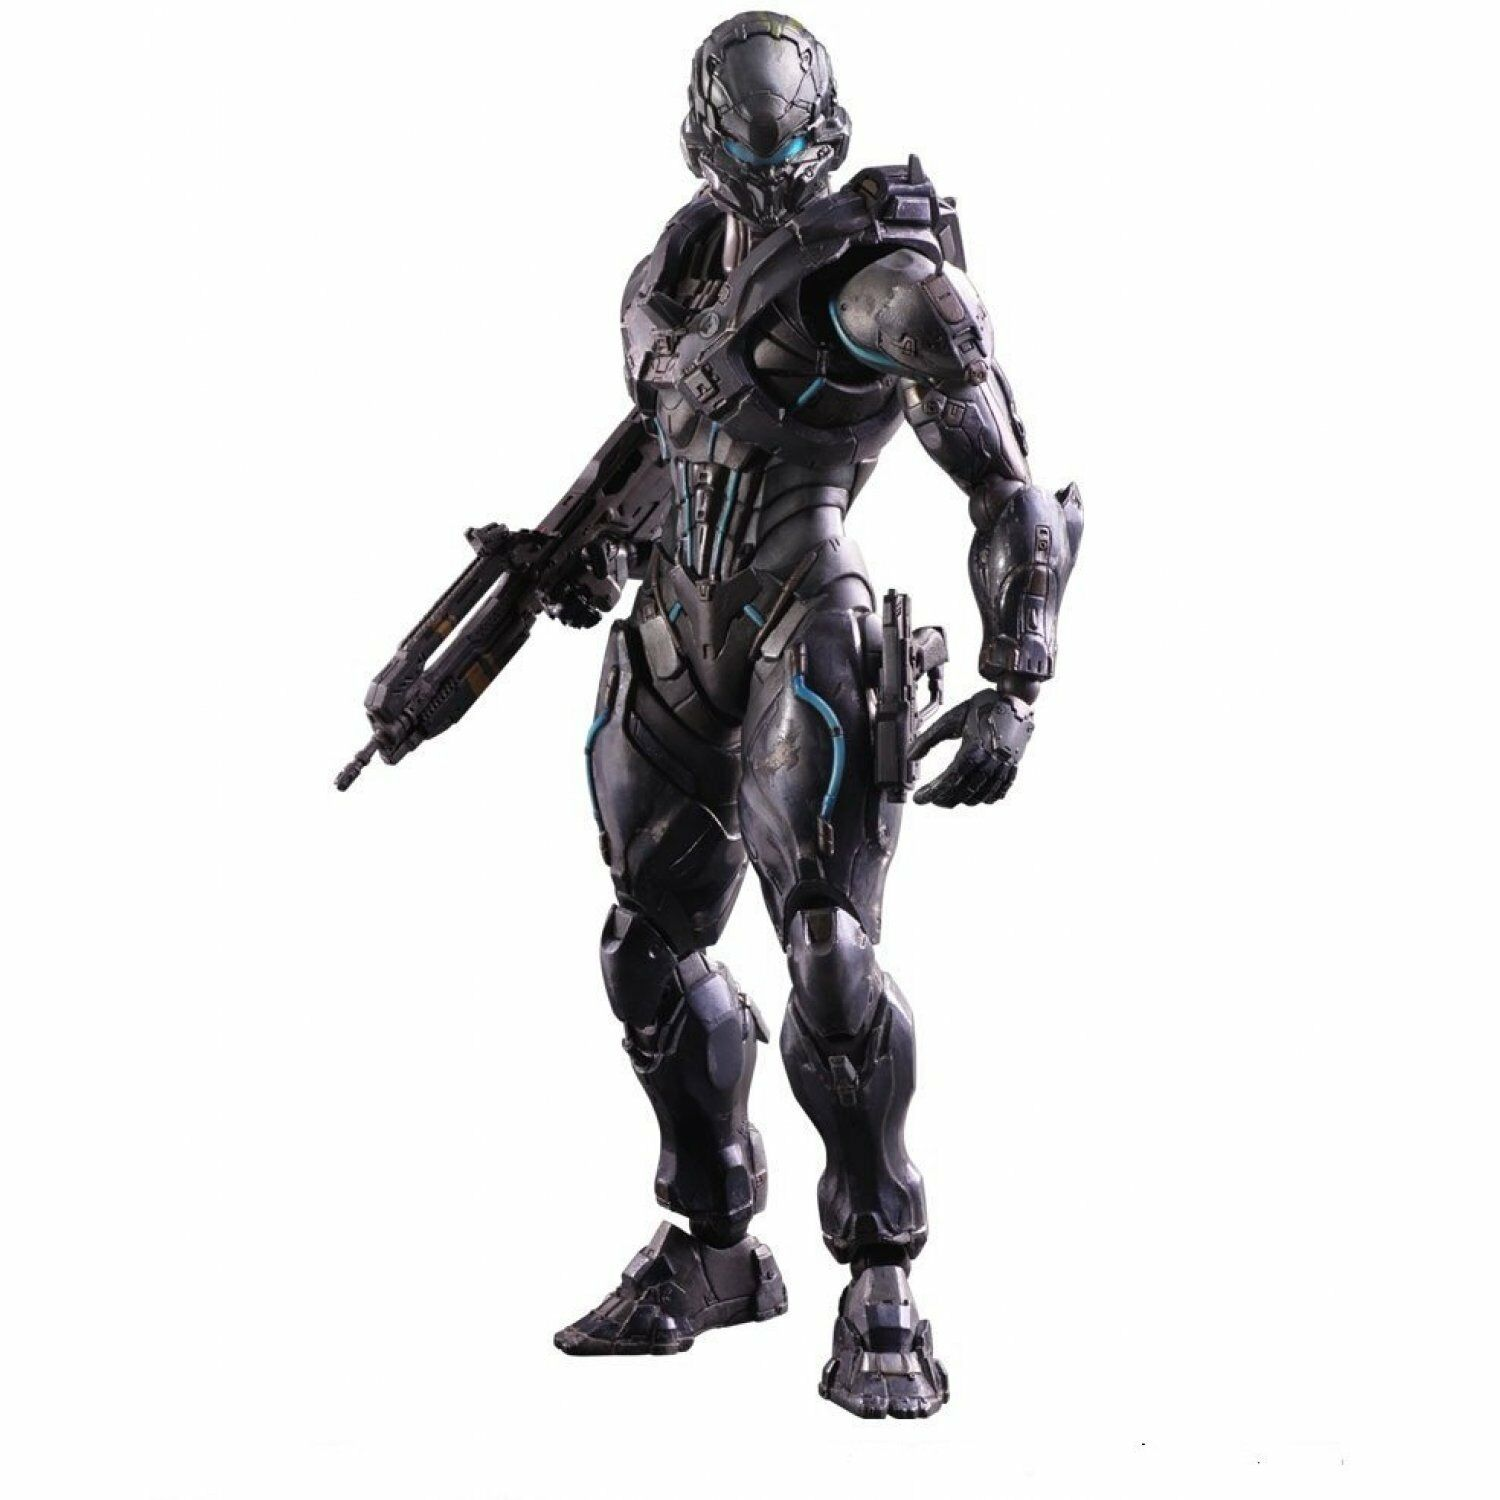 Halo 5 Spartan Locke 10 Play Arts Kai Figura de acción (Square Enix) NEW